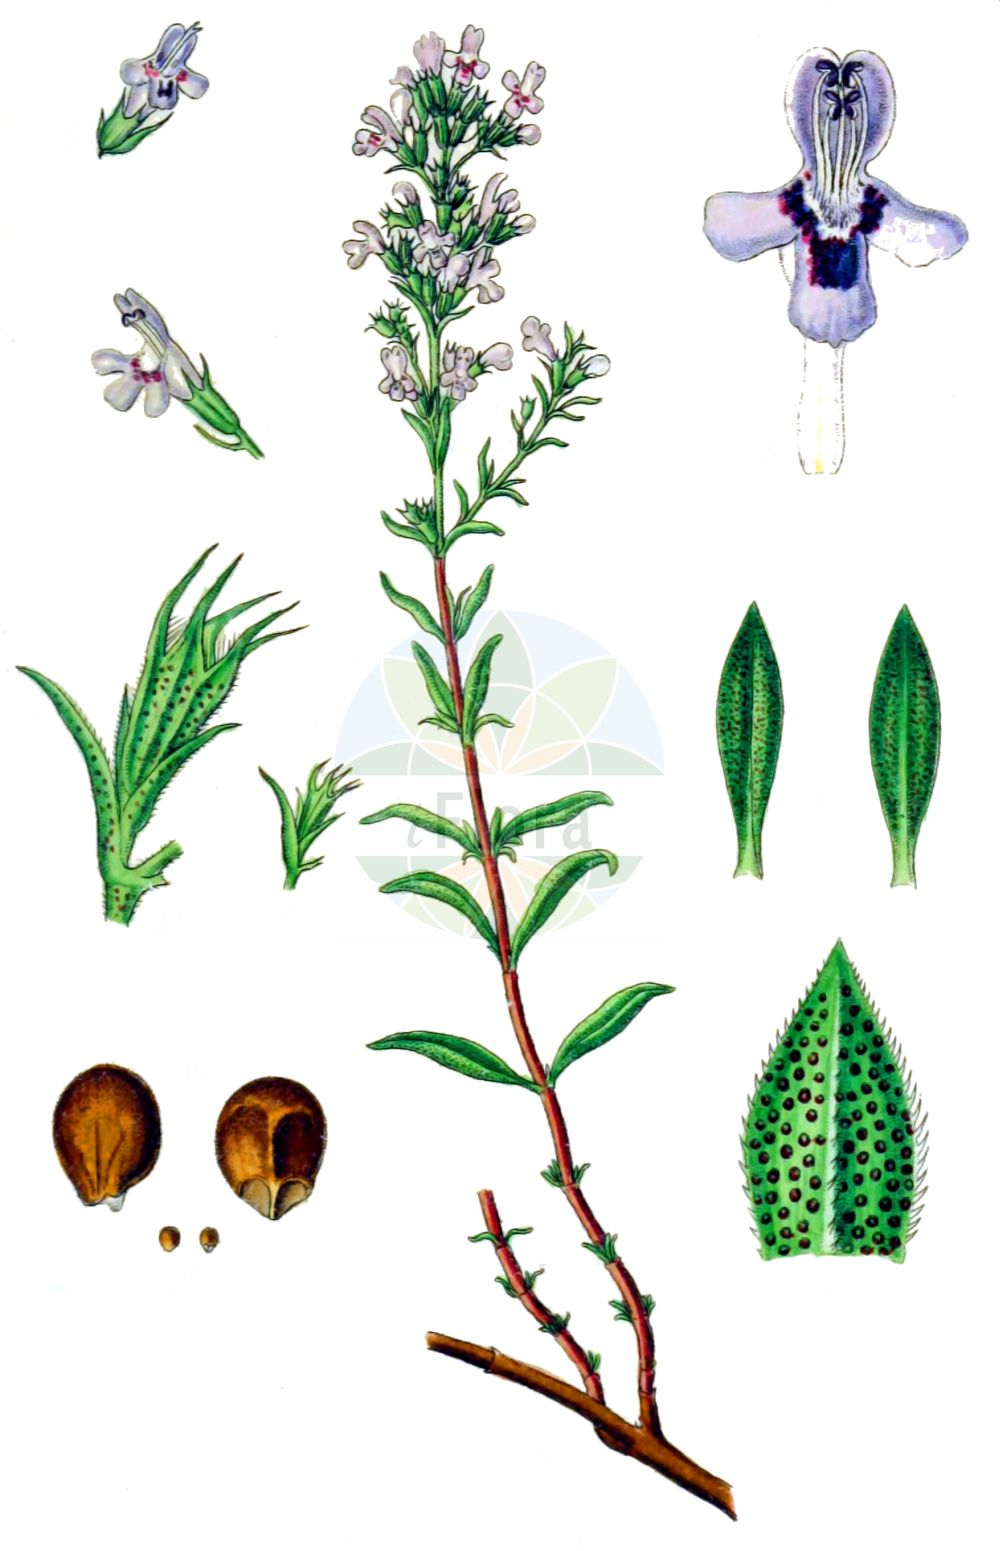 Historische Abbildung von Satureja montana (Winter-Bohnenkraut - Winter Savory). Das Bild zeigt Blatt, Bluete, Frucht und Same. ---- Historical Drawing of Satureja montana (Winter-Bohnenkraut - Winter Savory).The image is showing leaf, flower, fruit and seed.(Satureja montana,Winter-Bohnenkraut,Winter Savory,Clinopodium montanum,Micromeria montana,Satureja montana,Saturiastrum montanum,Winter-Bohnenkraut,Winter-Bohnenkraut,Winter Savory,Mountain Savory,Perennial Savory,Satureja,Bohnenkraut,Savory,Lamiaceae,Lippenbluetengewaechse,Lippenbluetler,Nettle family,Blatt,Bluete,Frucht,Same,leaf,flower,fruit,seed,Sturm (1796f))